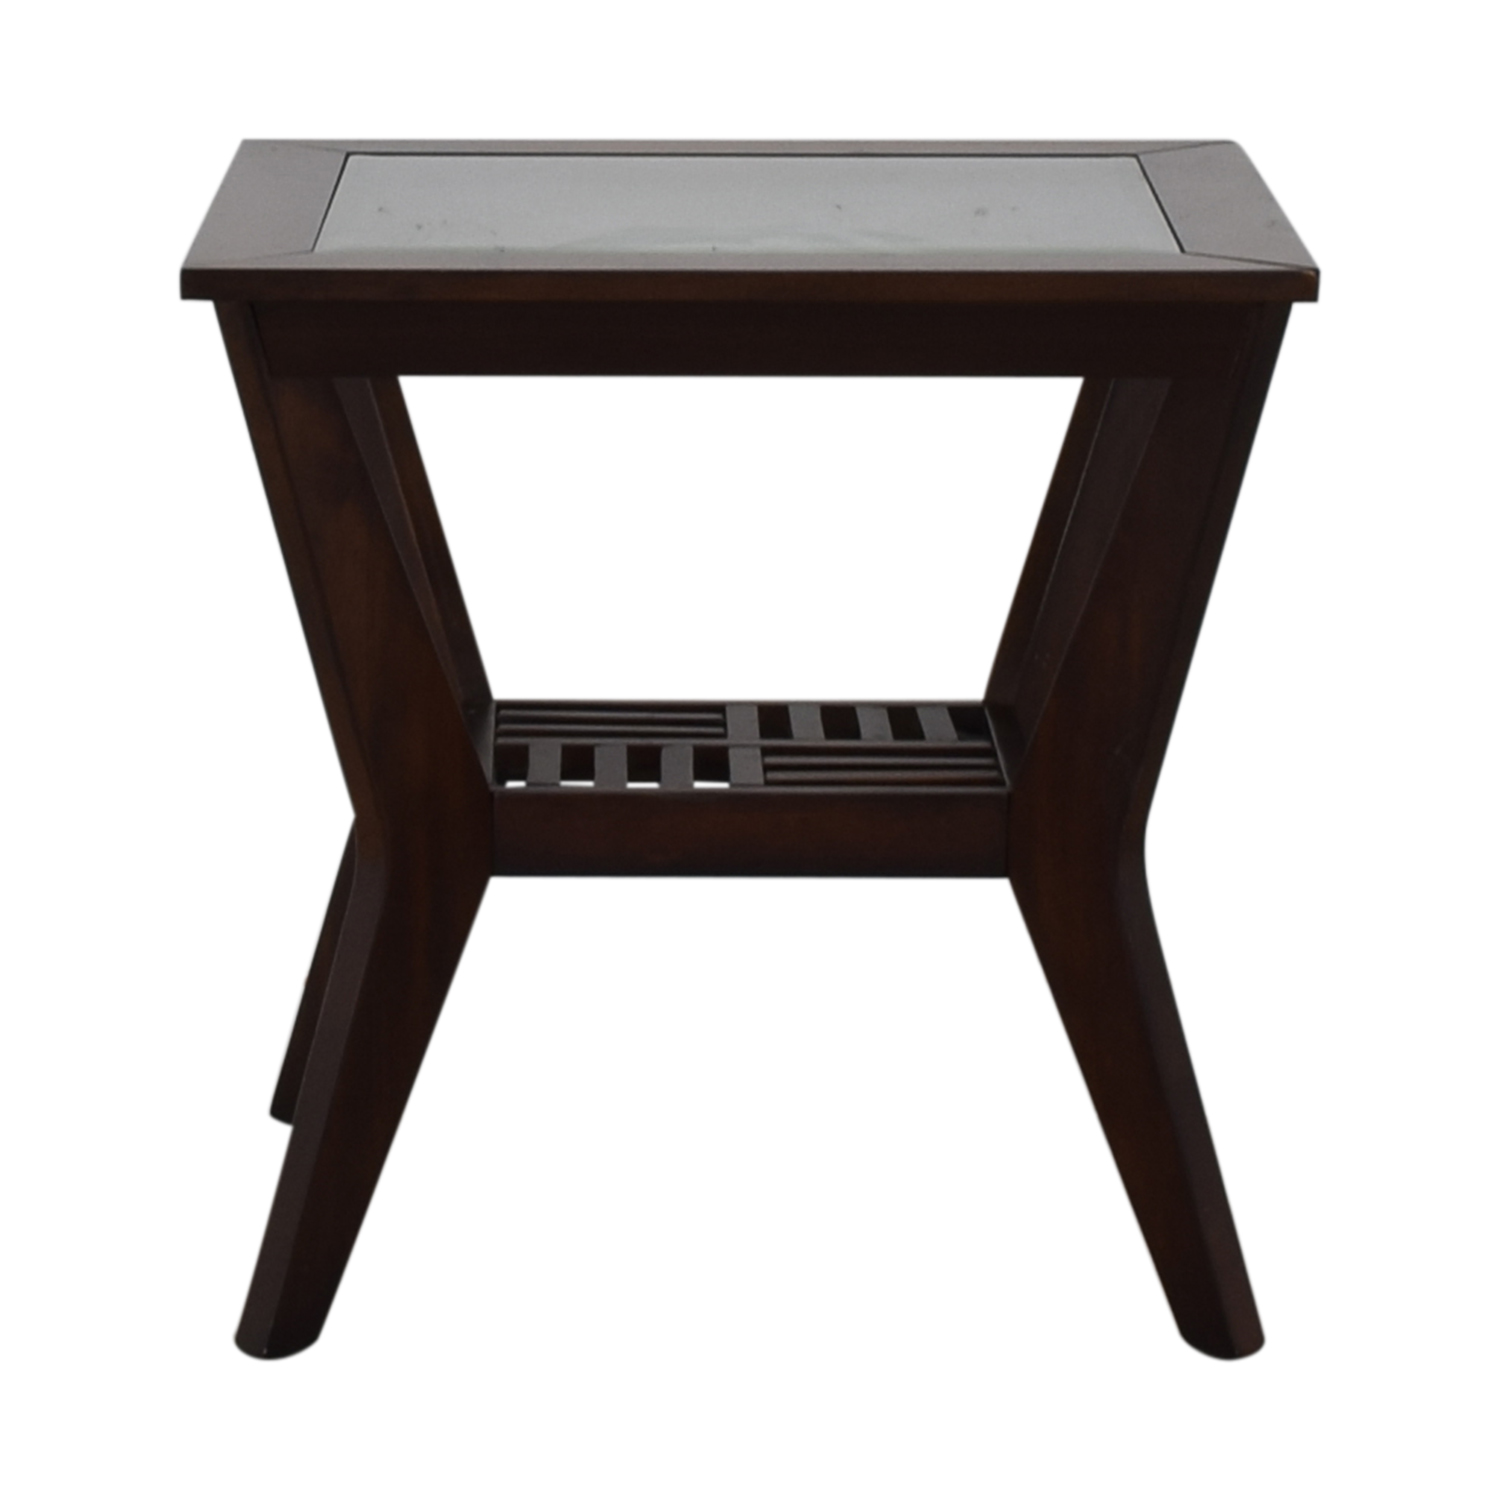 buy Raymour & Flanigan Wood and Glass End Table Raymour & Flanigan